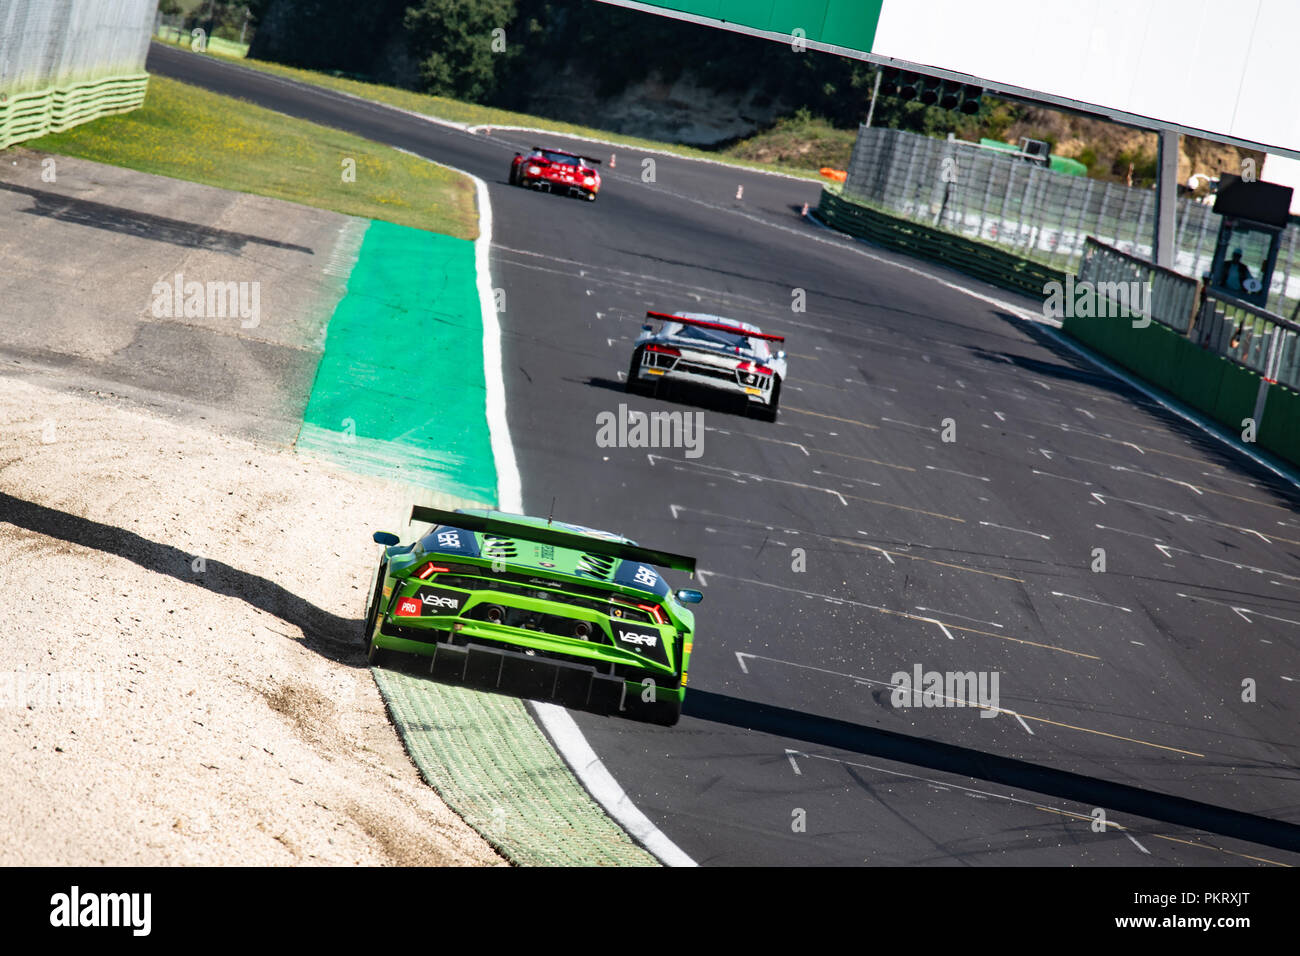 Wide shot of Lamborghini touring car in action rear view out of the corners in racing circuit - Stock Image